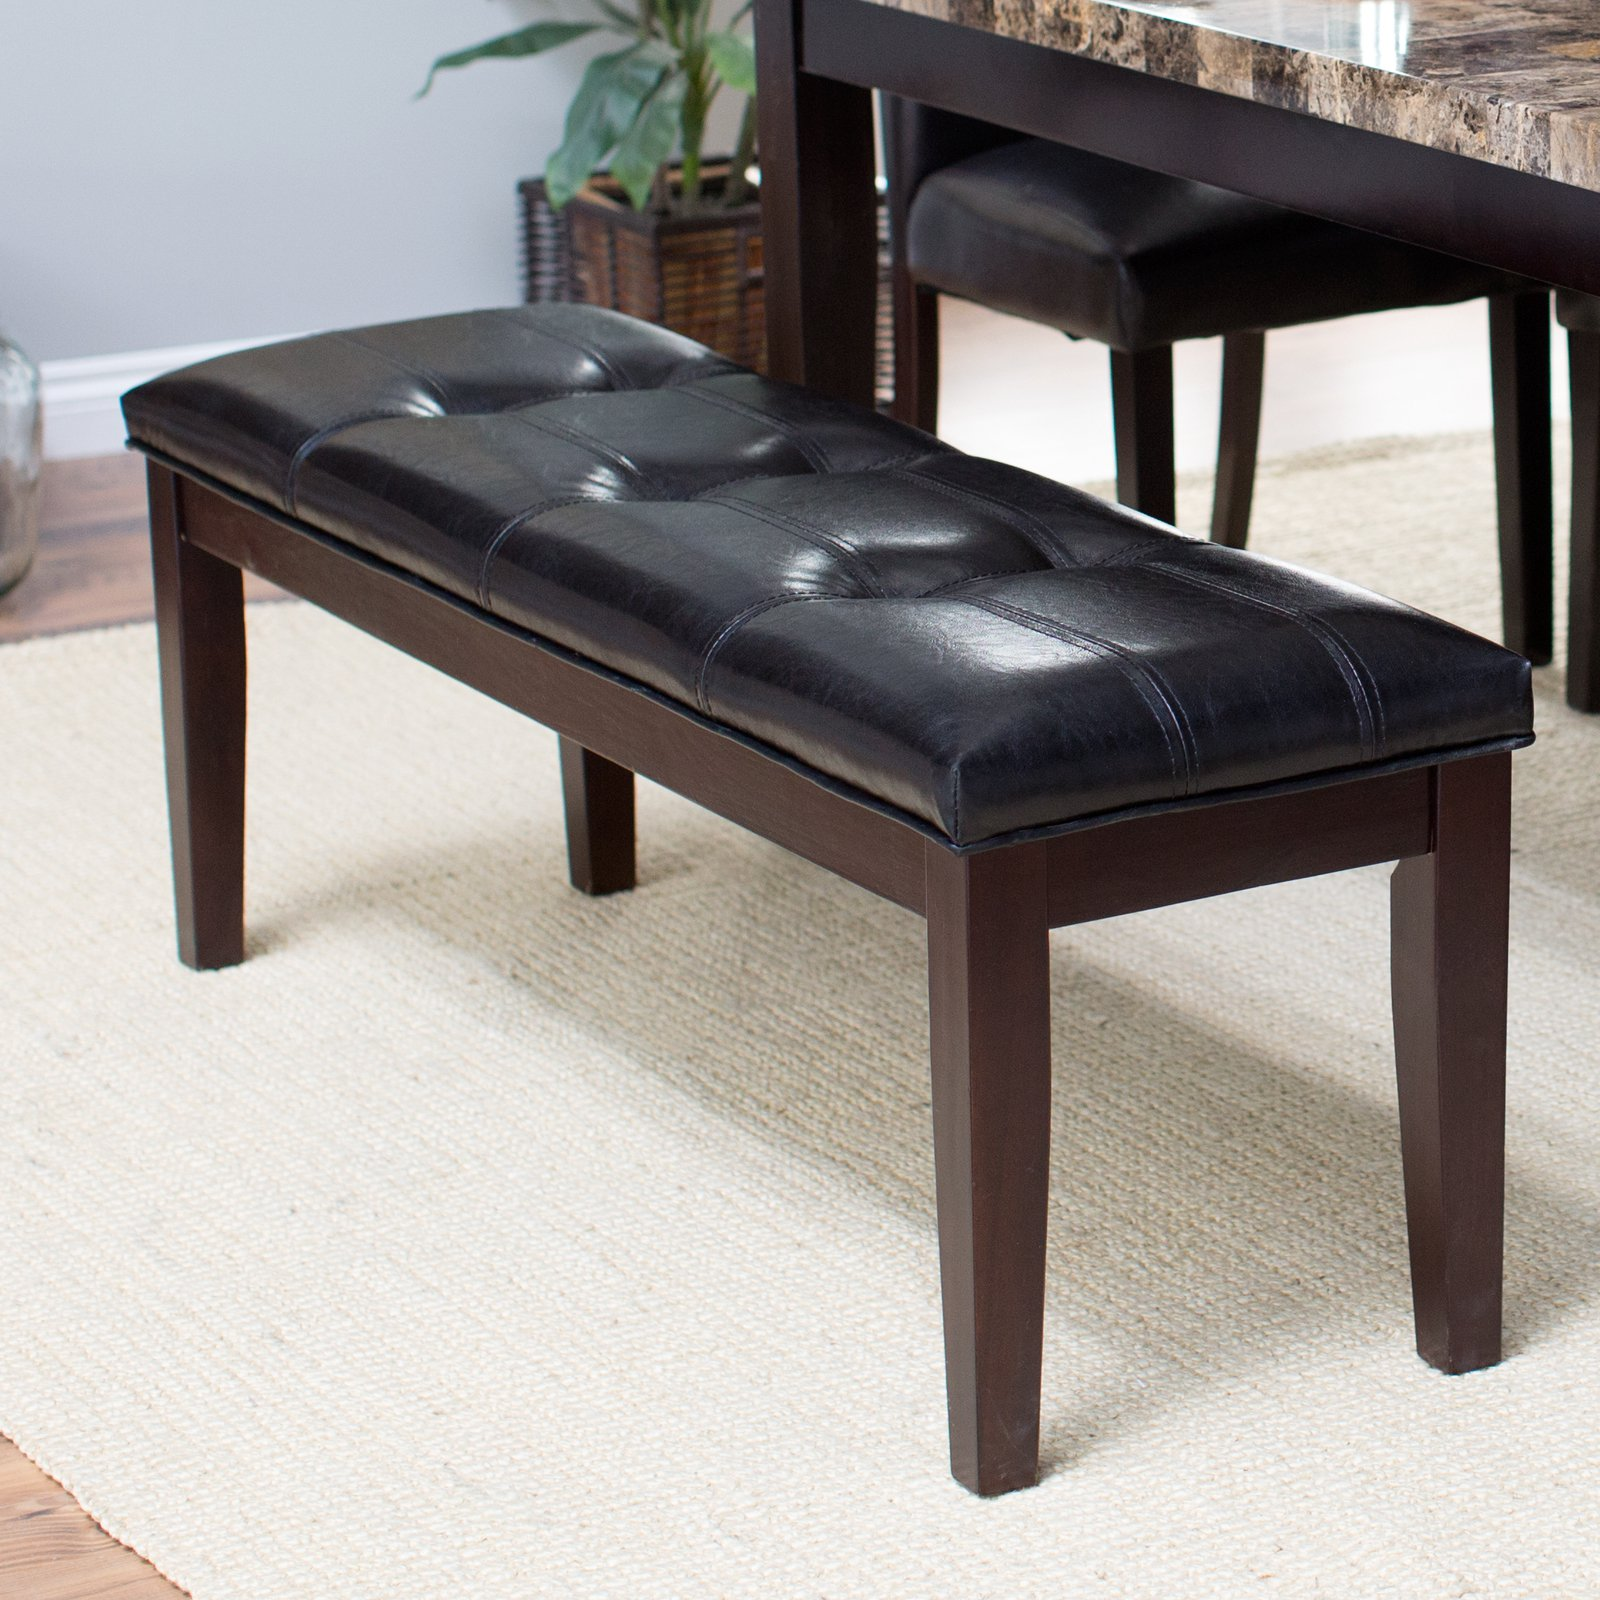 Finley Home Palazzo Backless Dining Bench, Brown